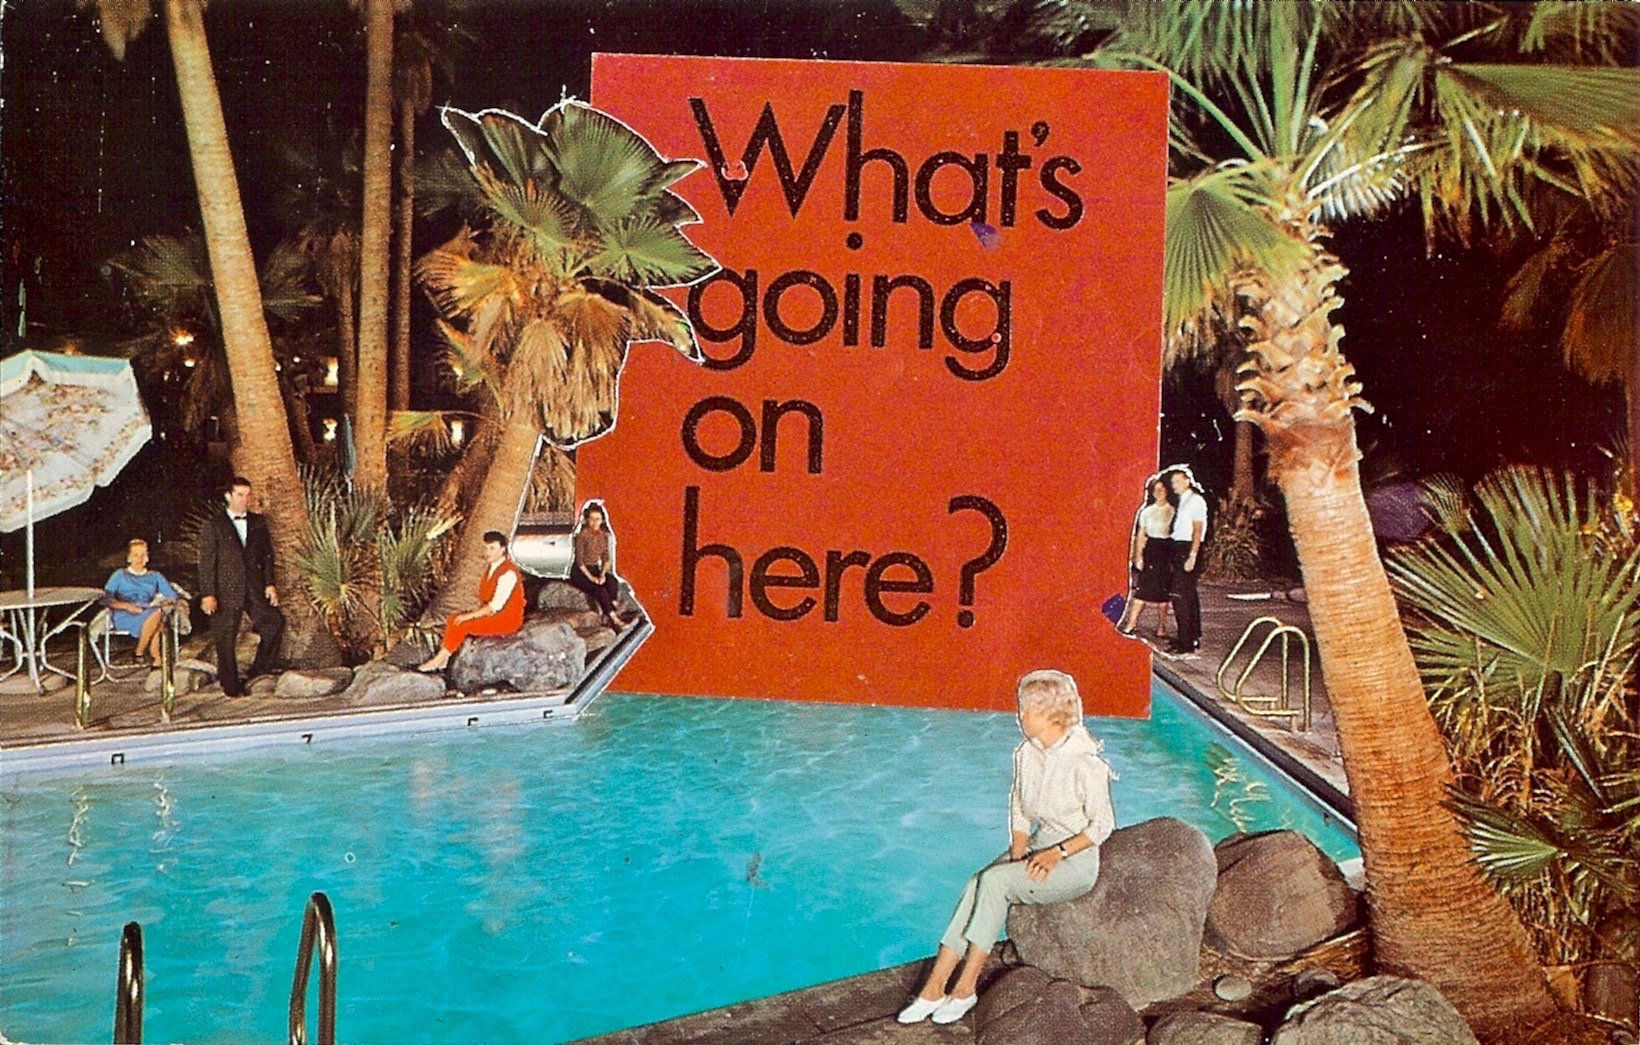 Strange Pool Party,     Vintage Postcard Re-Imagined